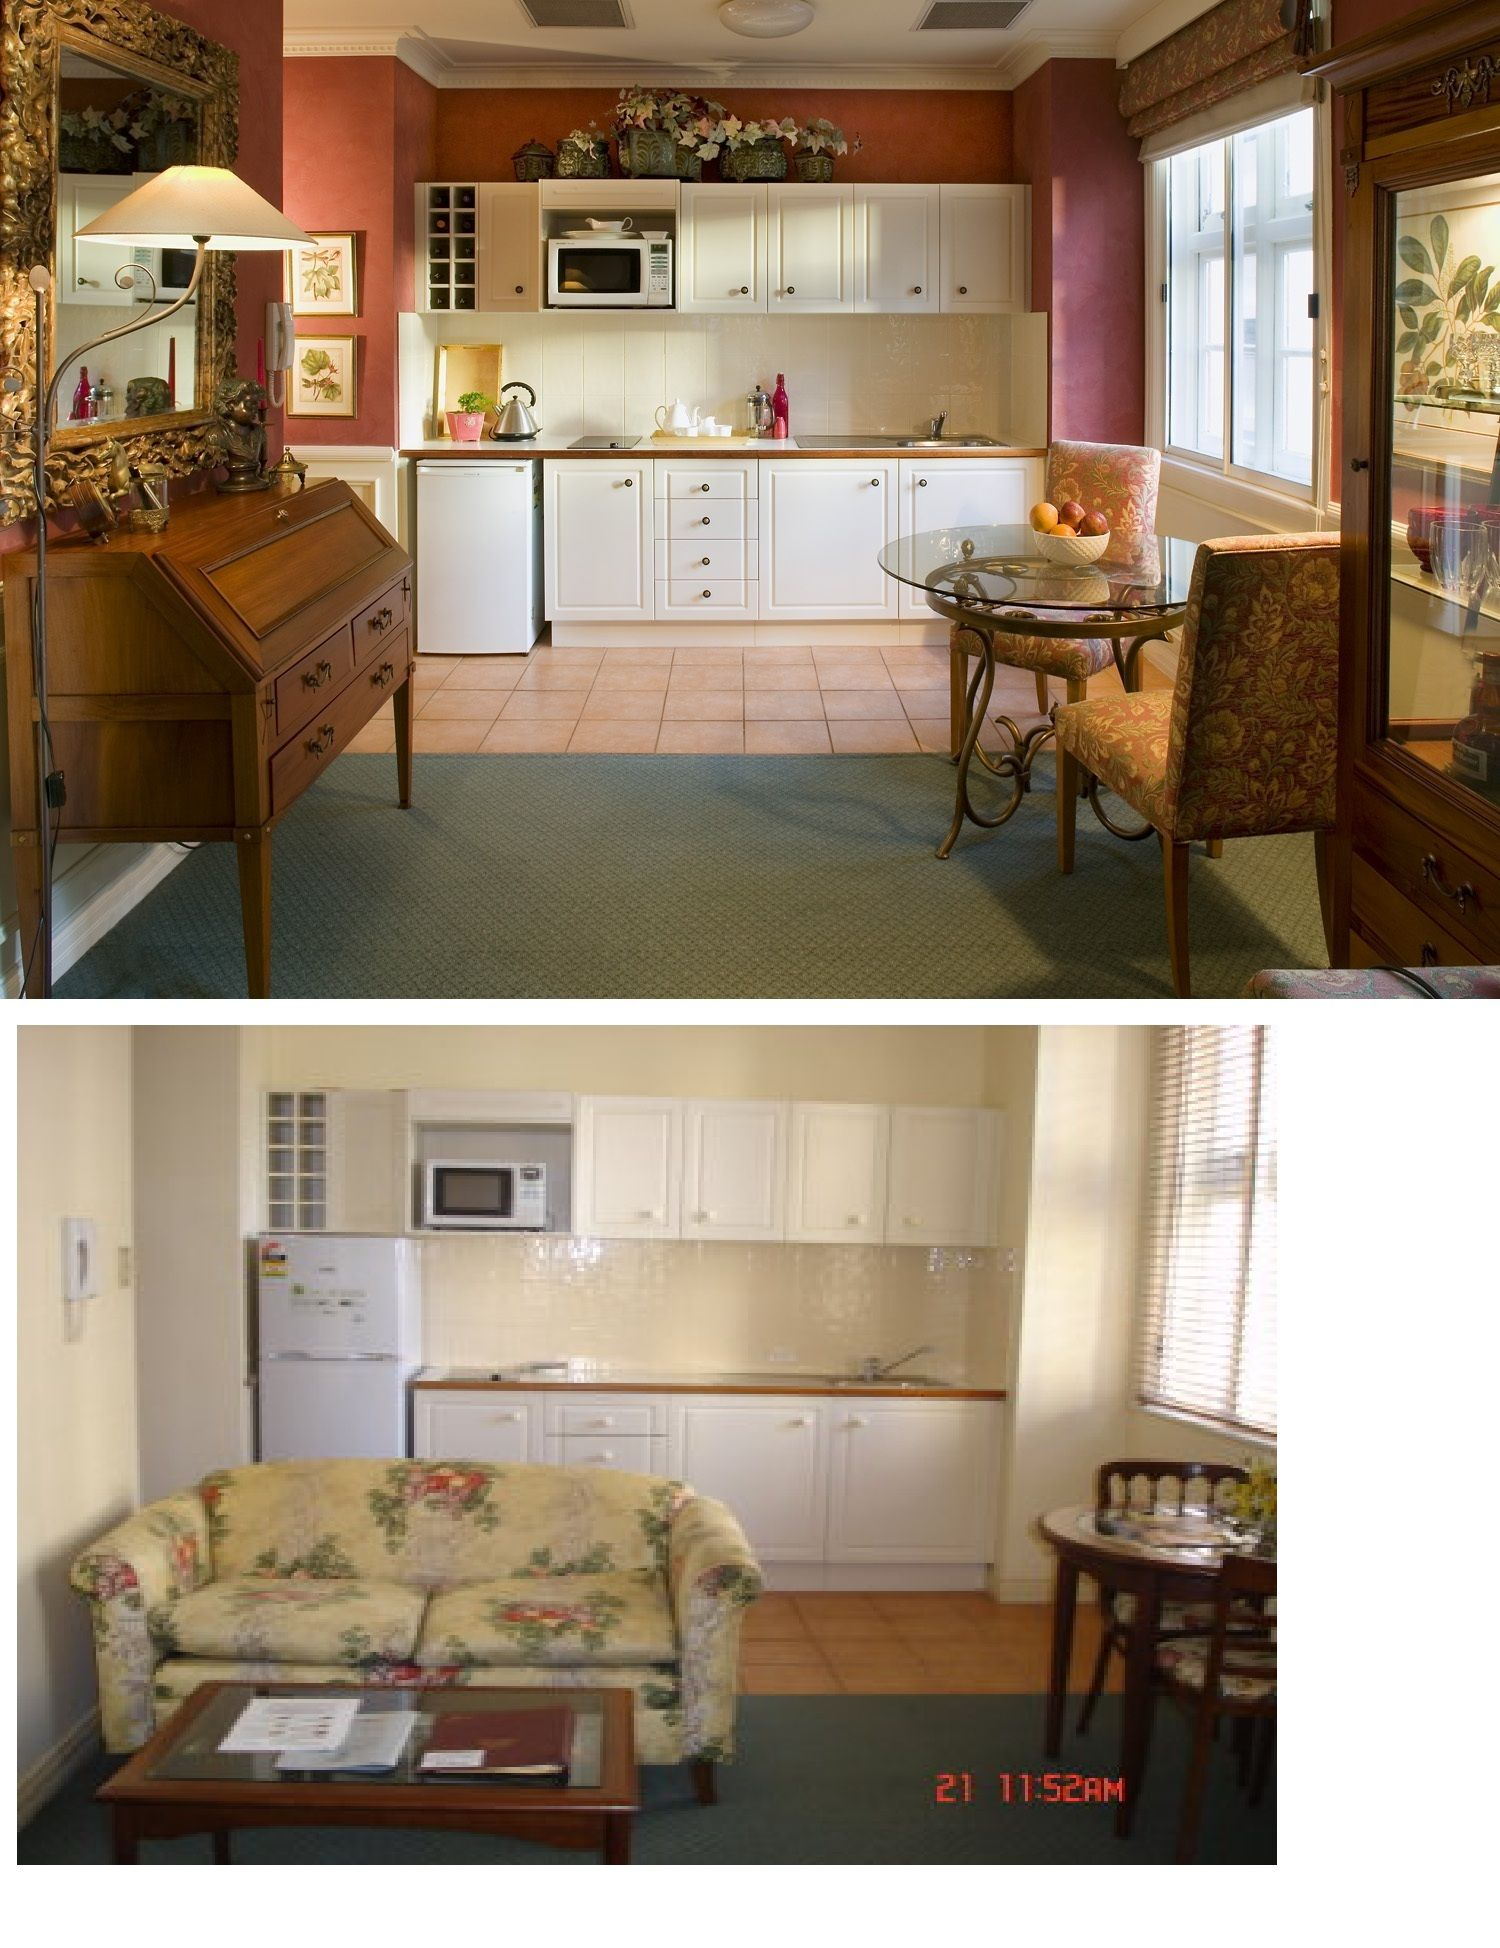 French style pied terre in a brisbane heritage listed apartment french style pied terre in a brisbane heritage listed apartment building the carpet tiles or fixtures werent changed so we created the new look with baanklon Image collections